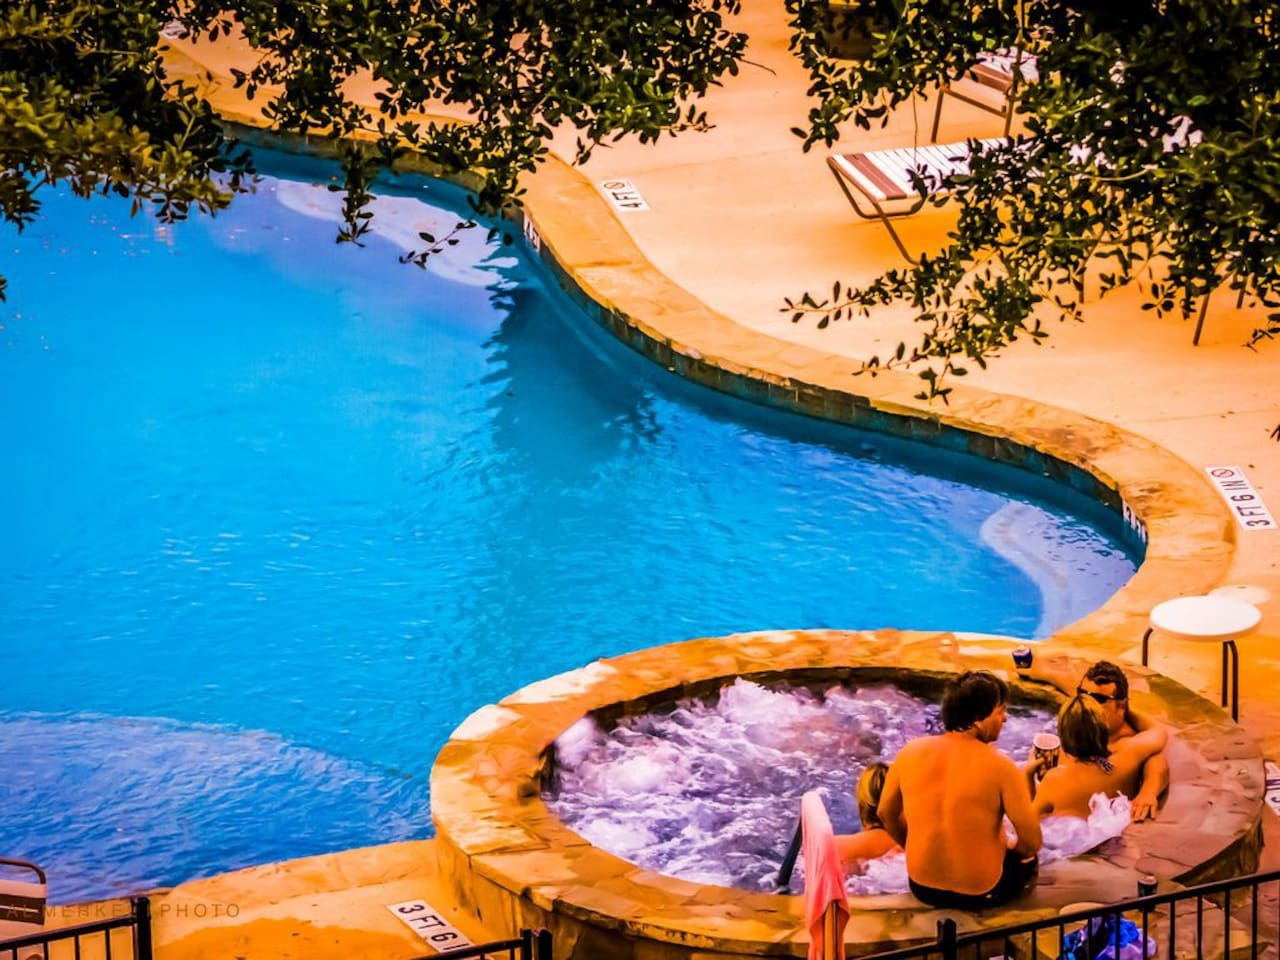 ON THE COMAL RIVER WITH POOL AND HOT TUB